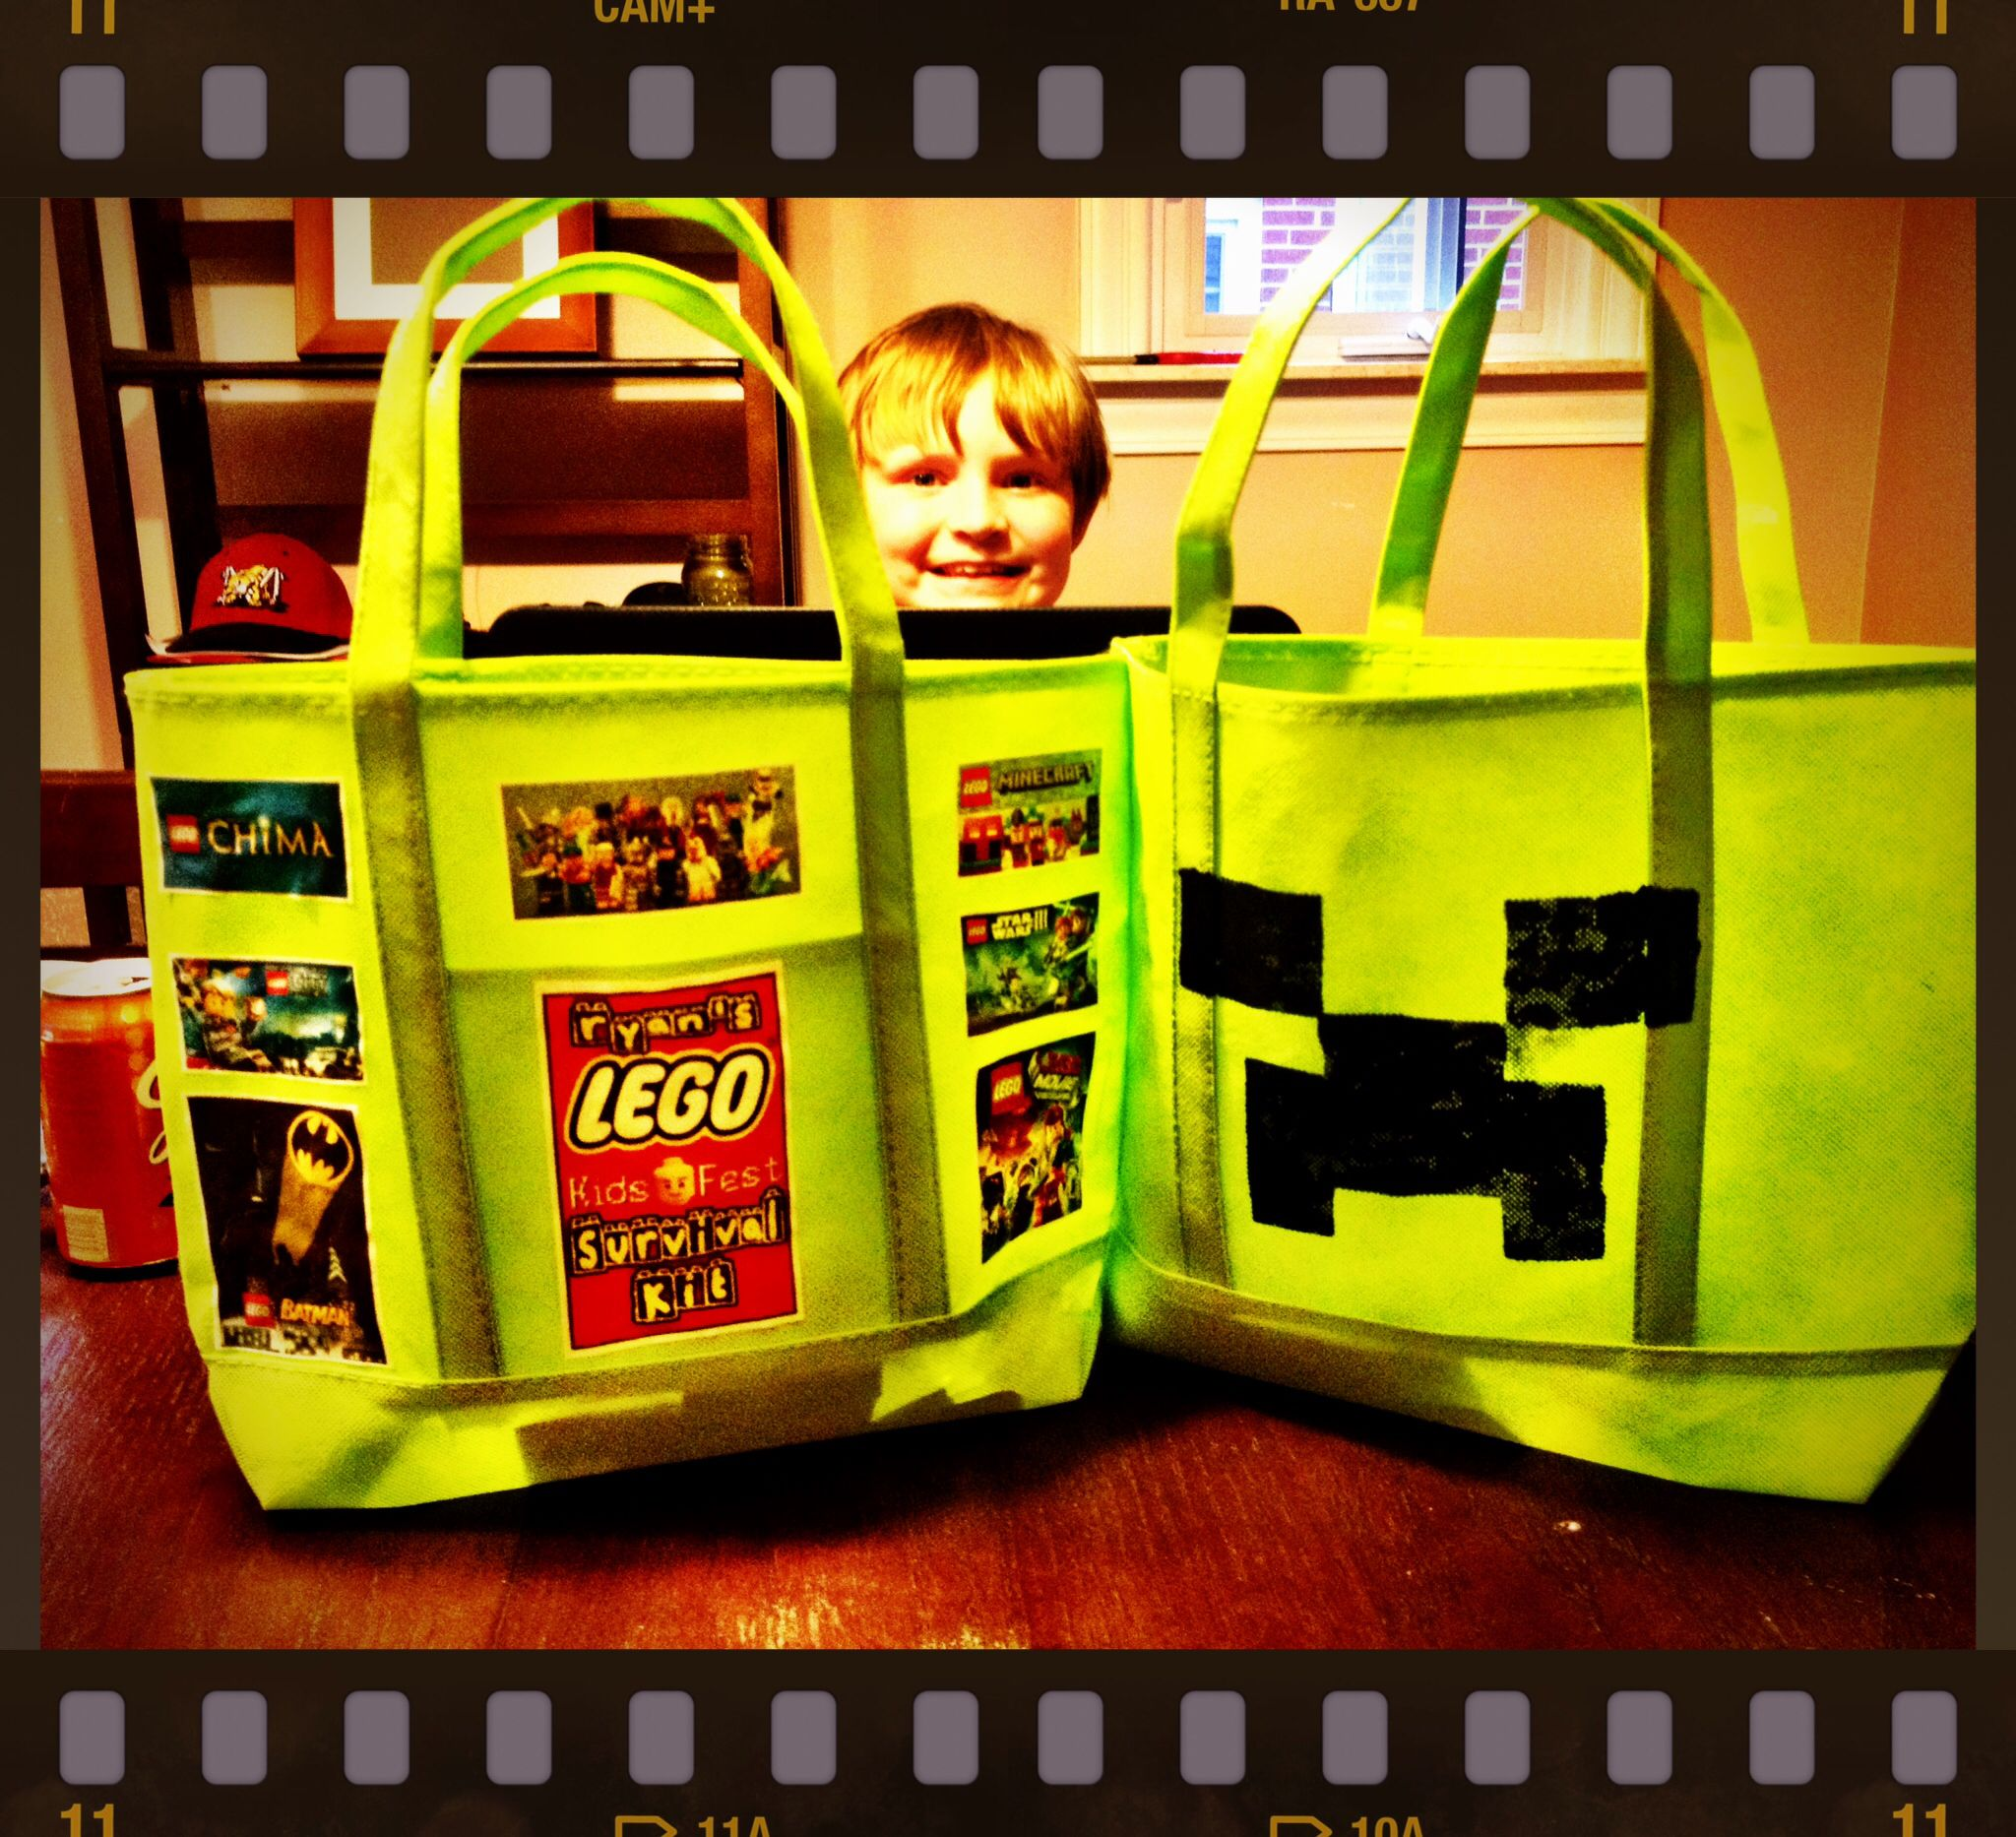 Lego kids fest survival bags for Ry's sleepover and outing. Can't wait!  Personalized of course ... And had to throw a creeper on the back for good measure ;)